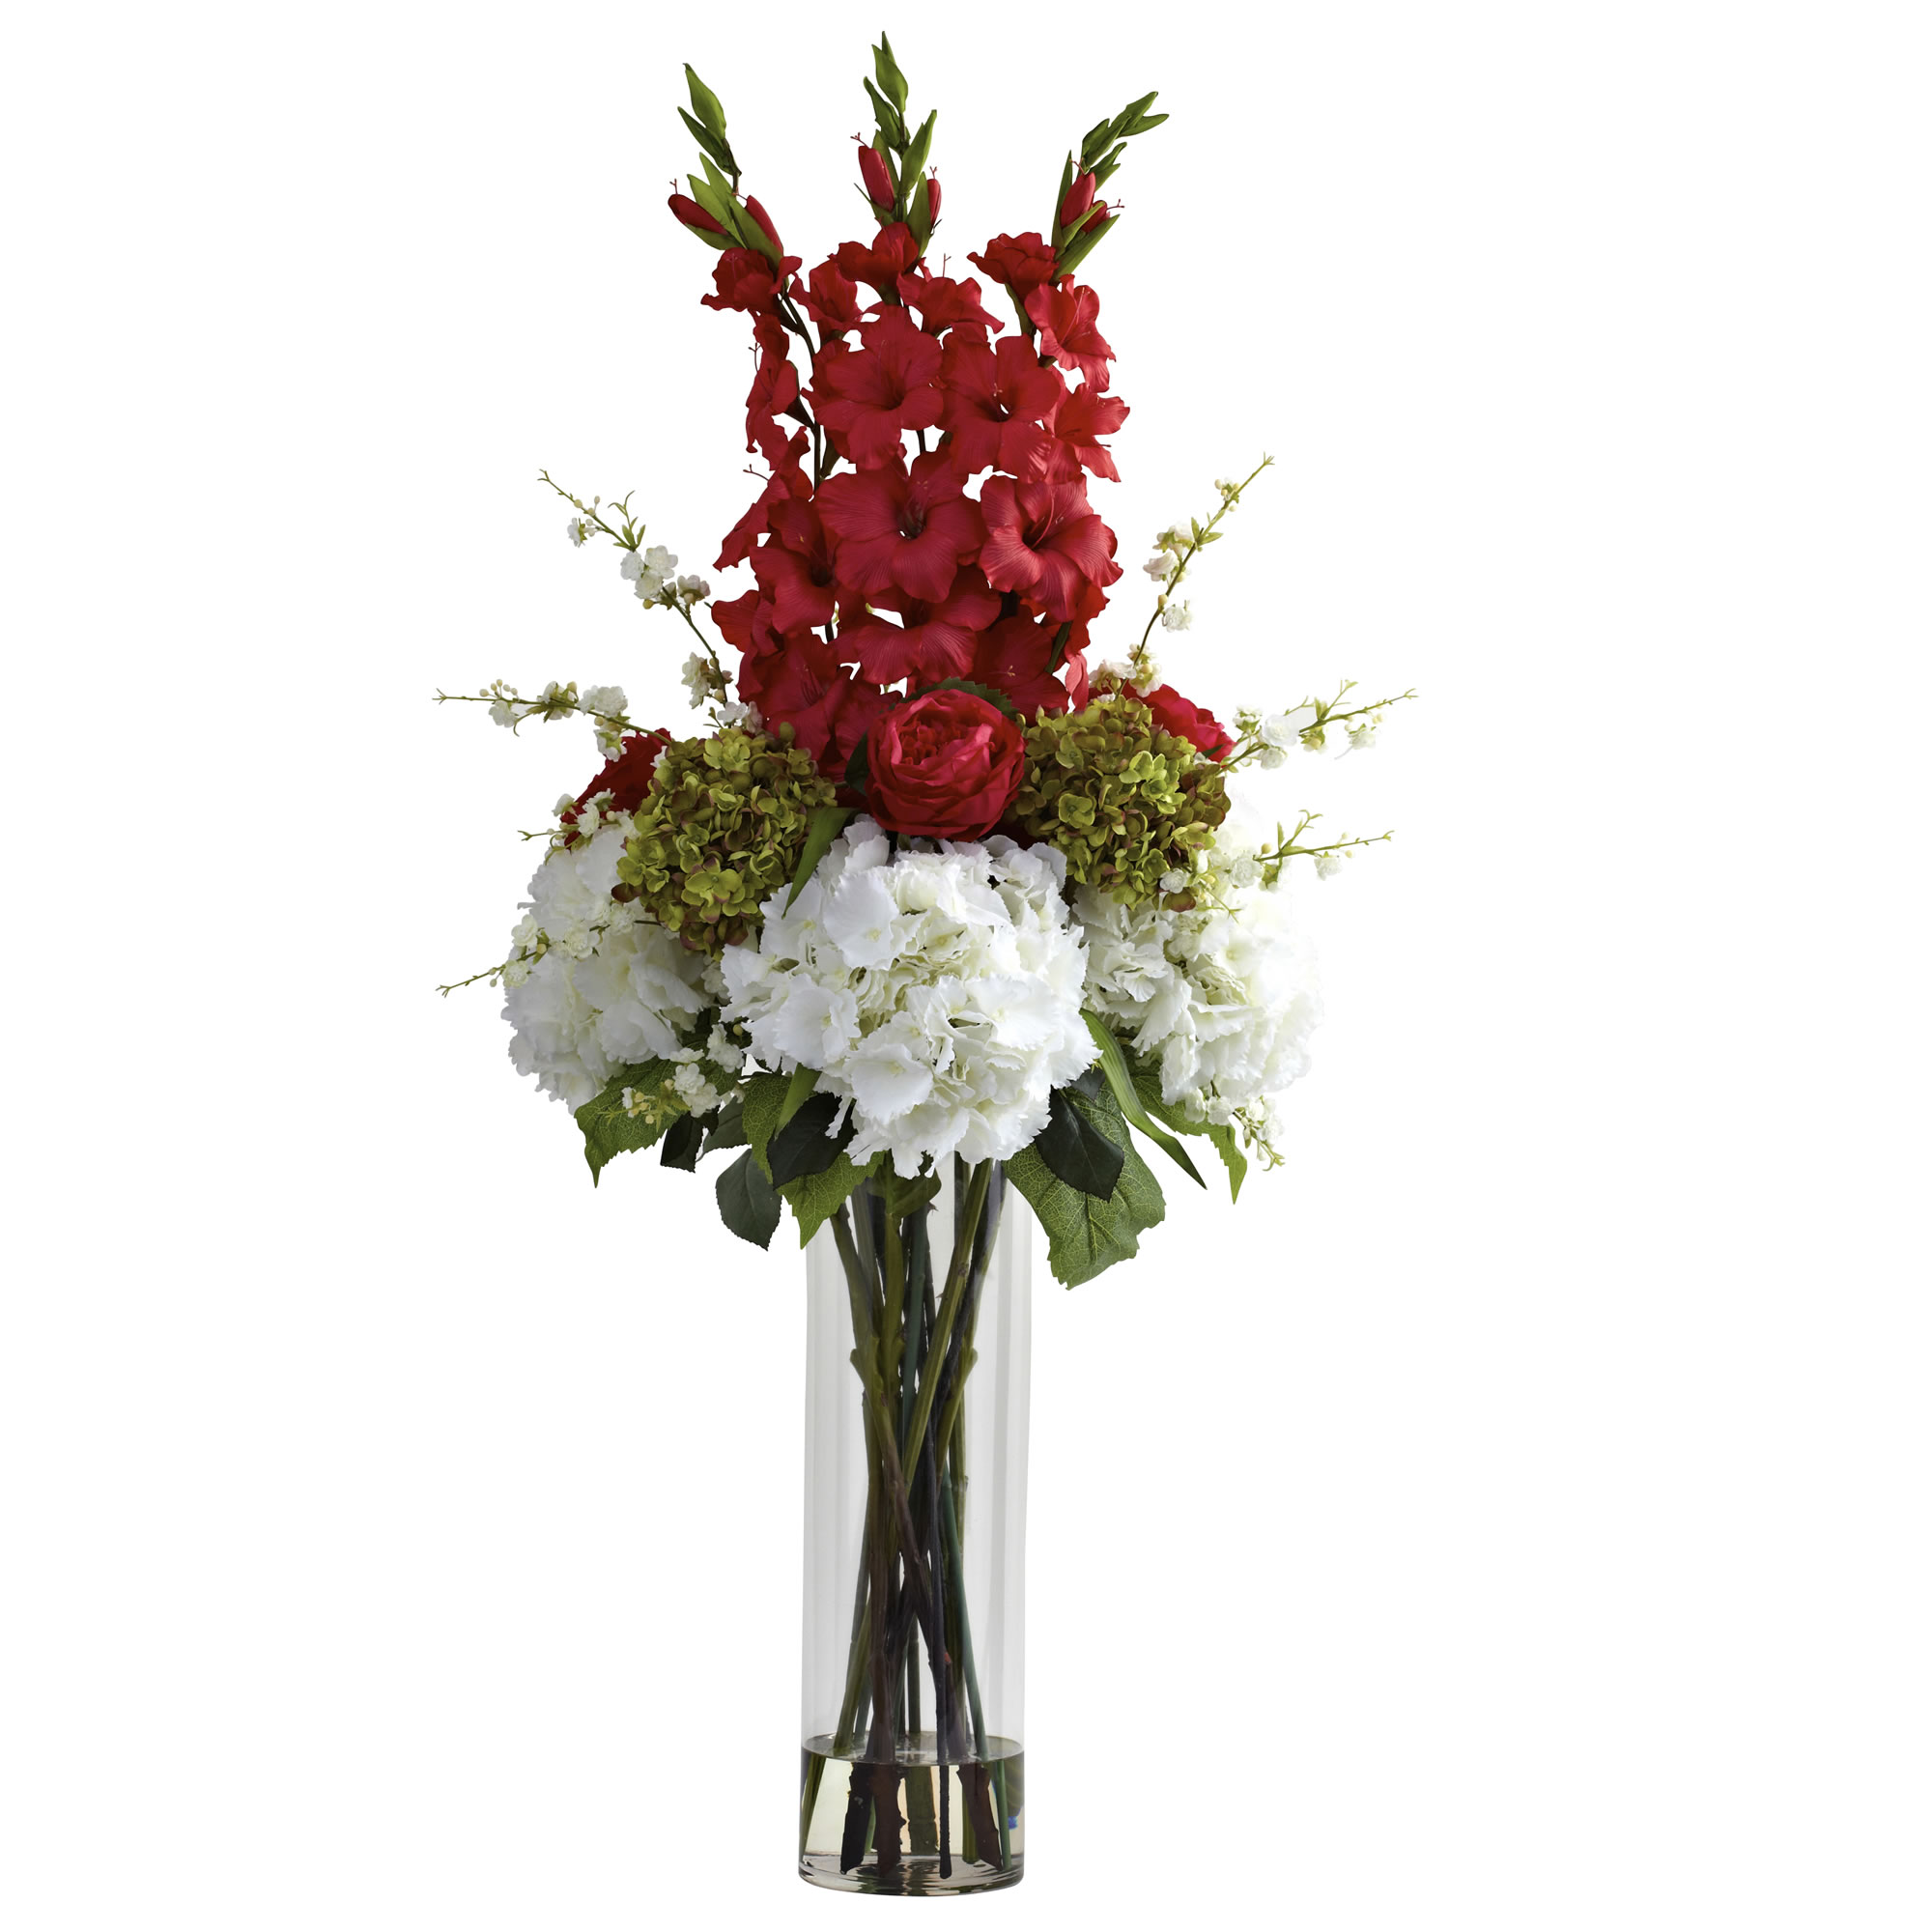 48 inch silk giant mixed floral arrangement in vase: multiple colors